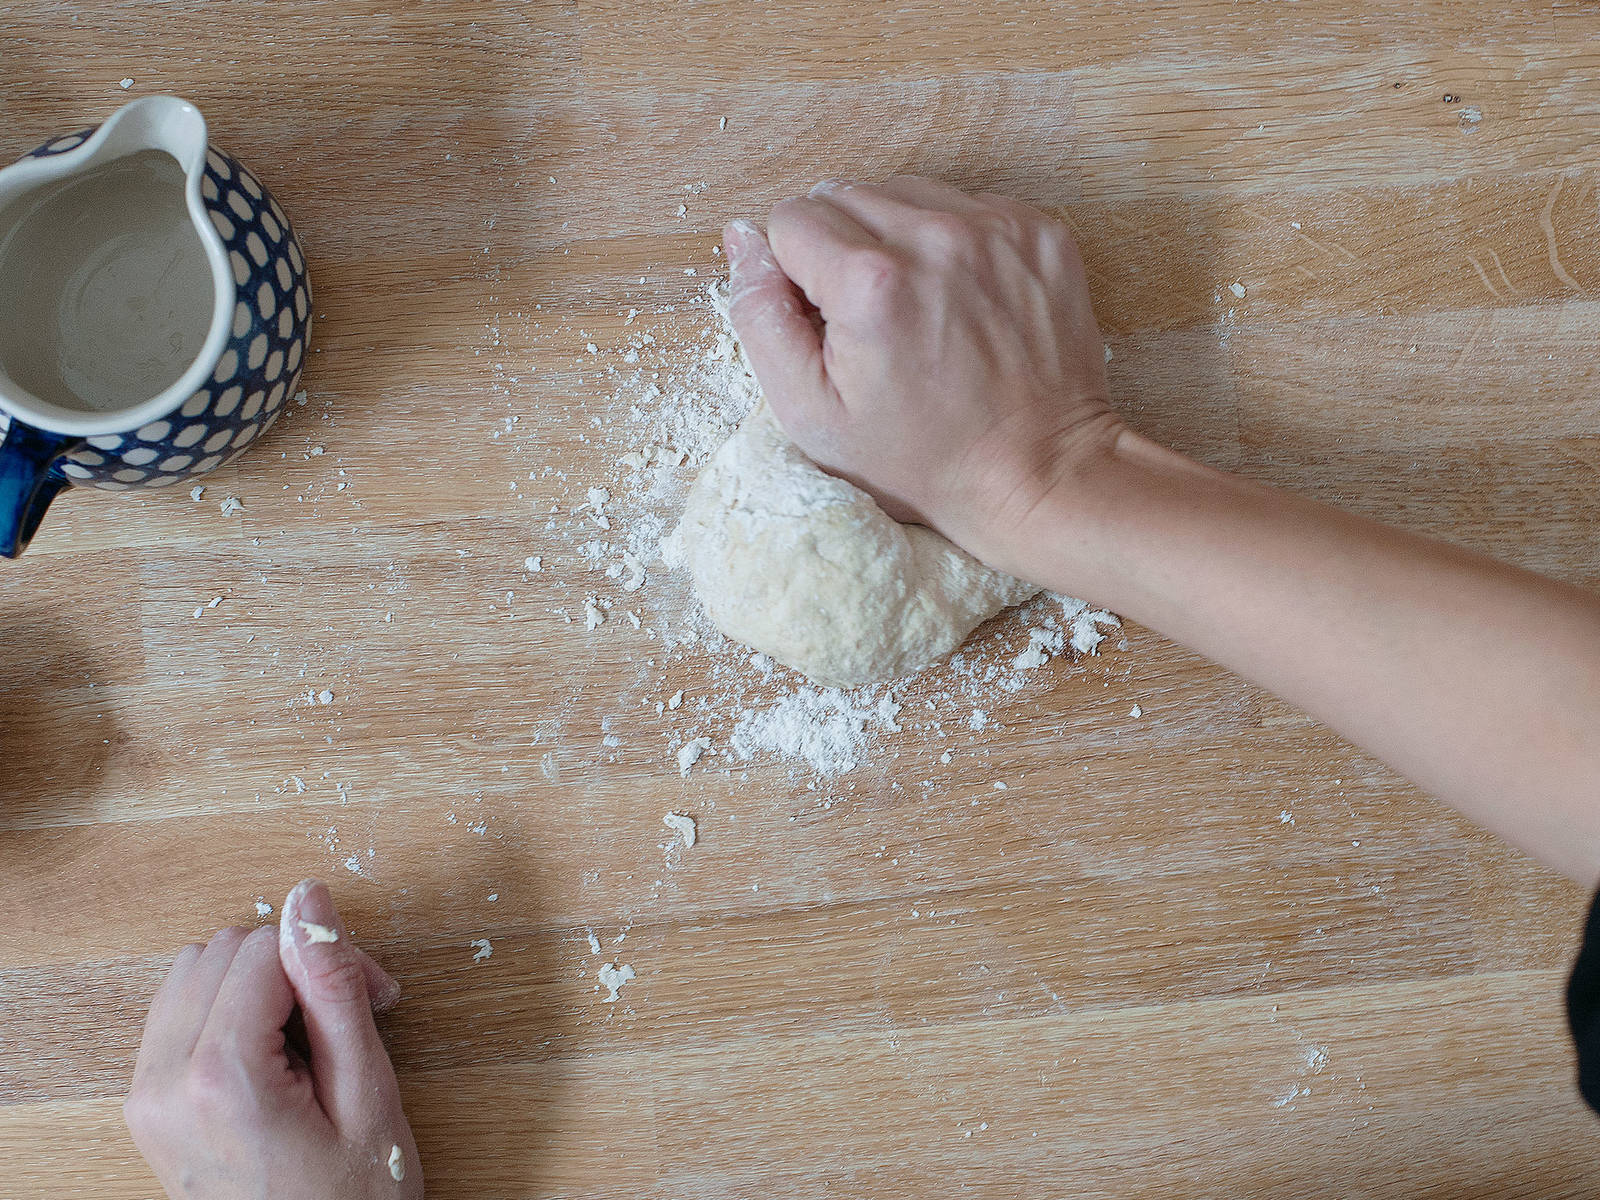 Preheat oven to its hottest setting (230°C - 300°C/450°F - 475°F) and put a pizza stone or a baking sheet inside to preheat. In a large bowl, sift spelt flour together with salt and gradually add lukewarm water and olive oil. Knead dough well for approx. 5 min., until soft and elastic.